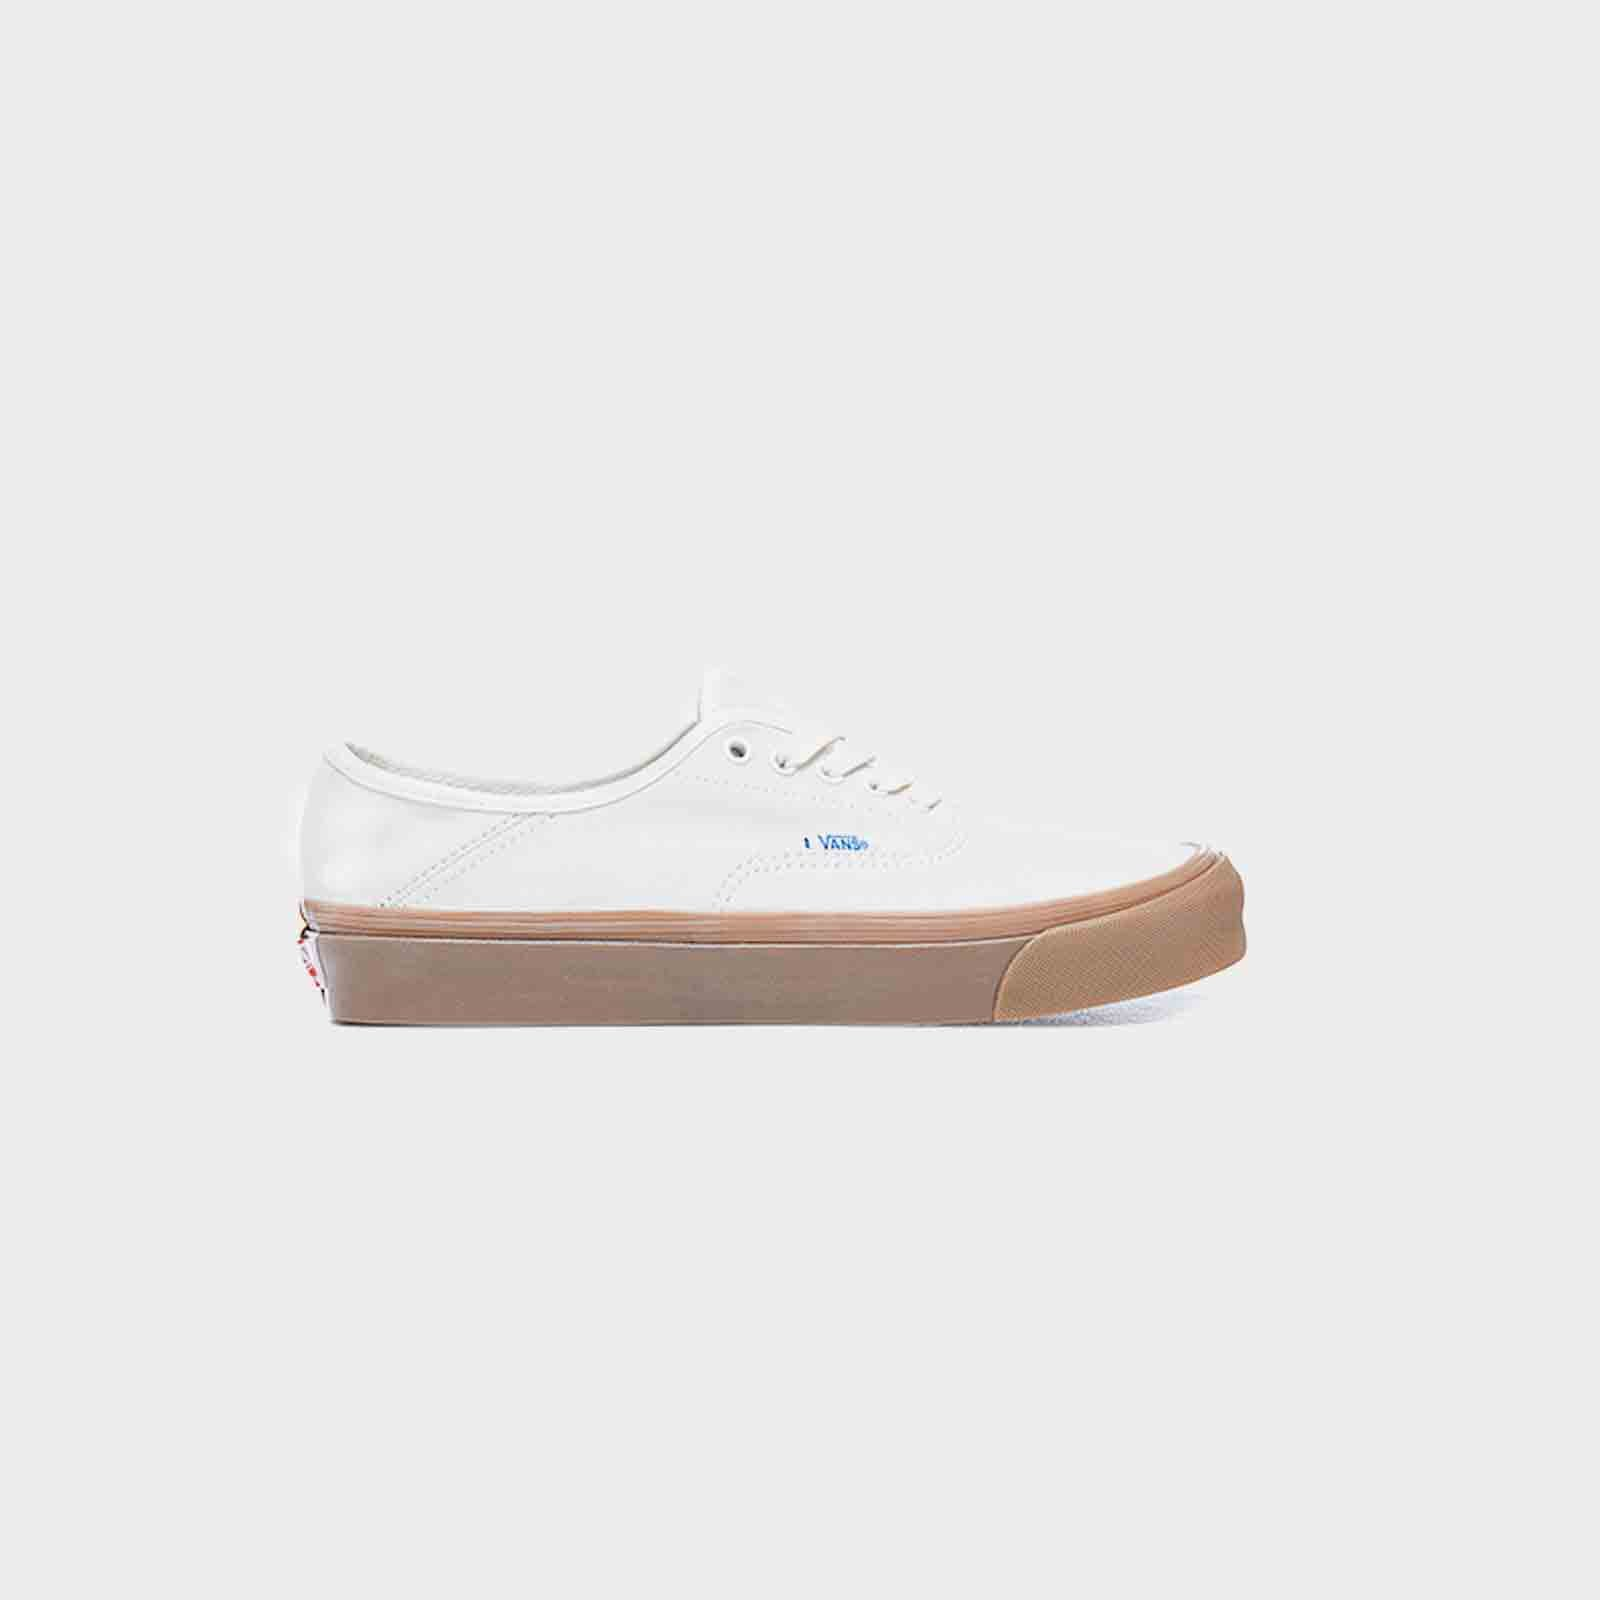 9be41f1edf Vans OG Style 43 LX - Vn0a3dpbqmc - Sneakersnstuff